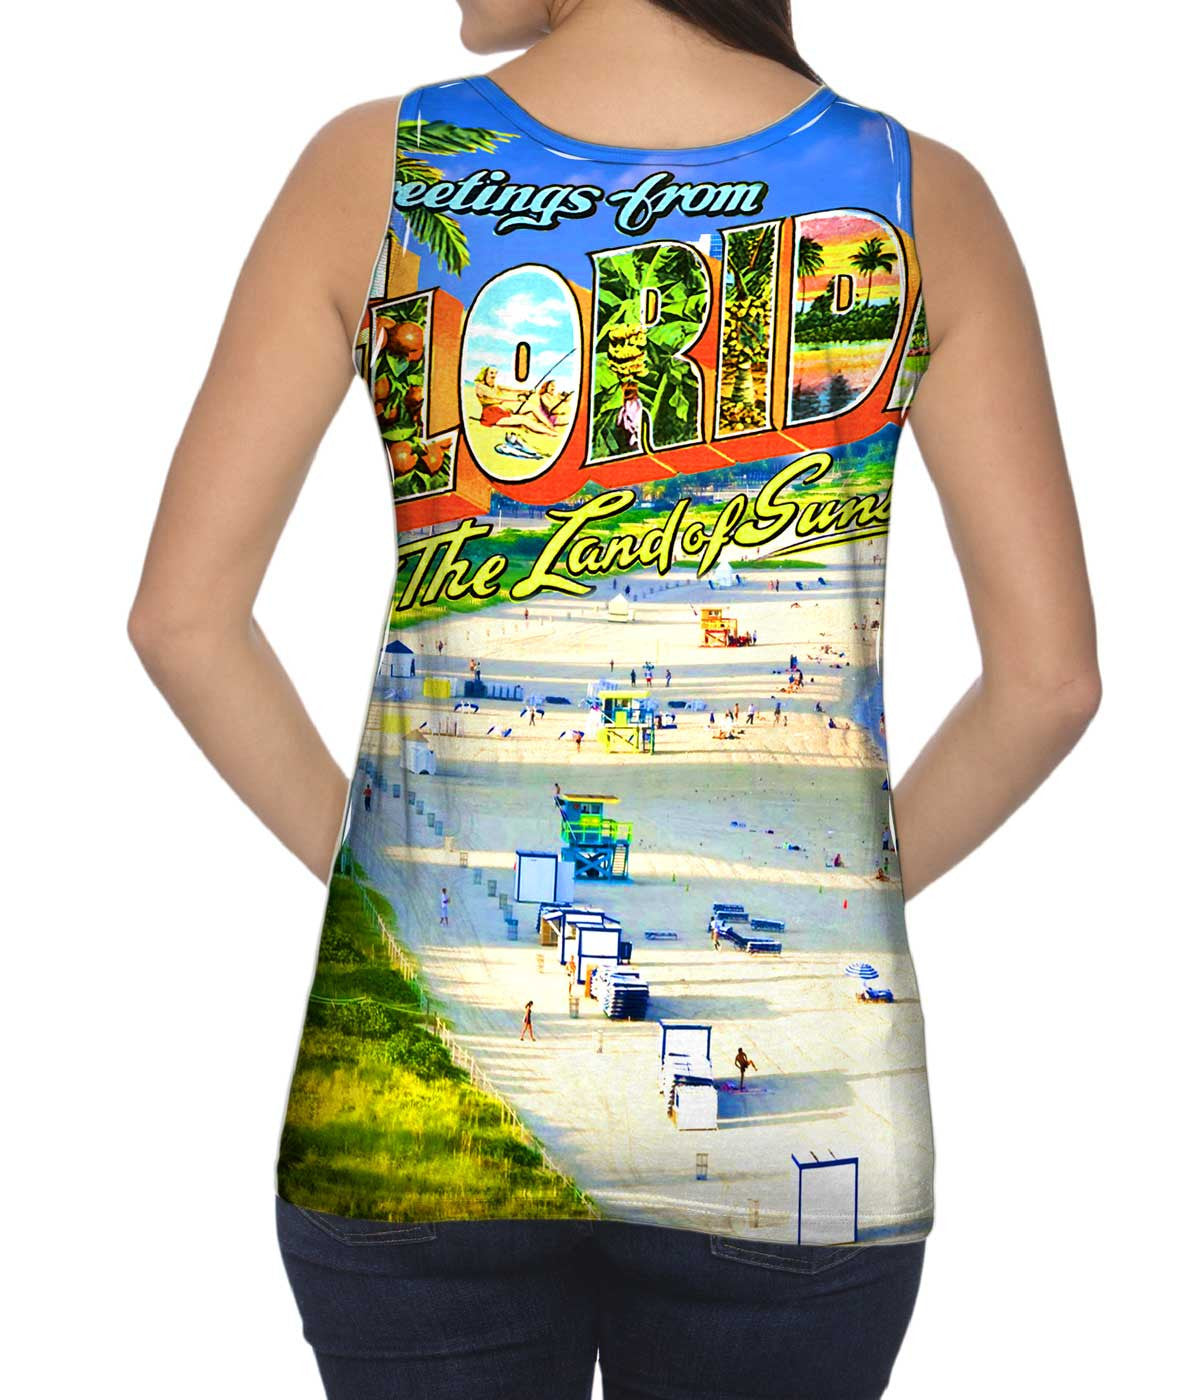 Greetings from Florida Yizzam Tshirt The Land of Sunshine Womens Tank Top